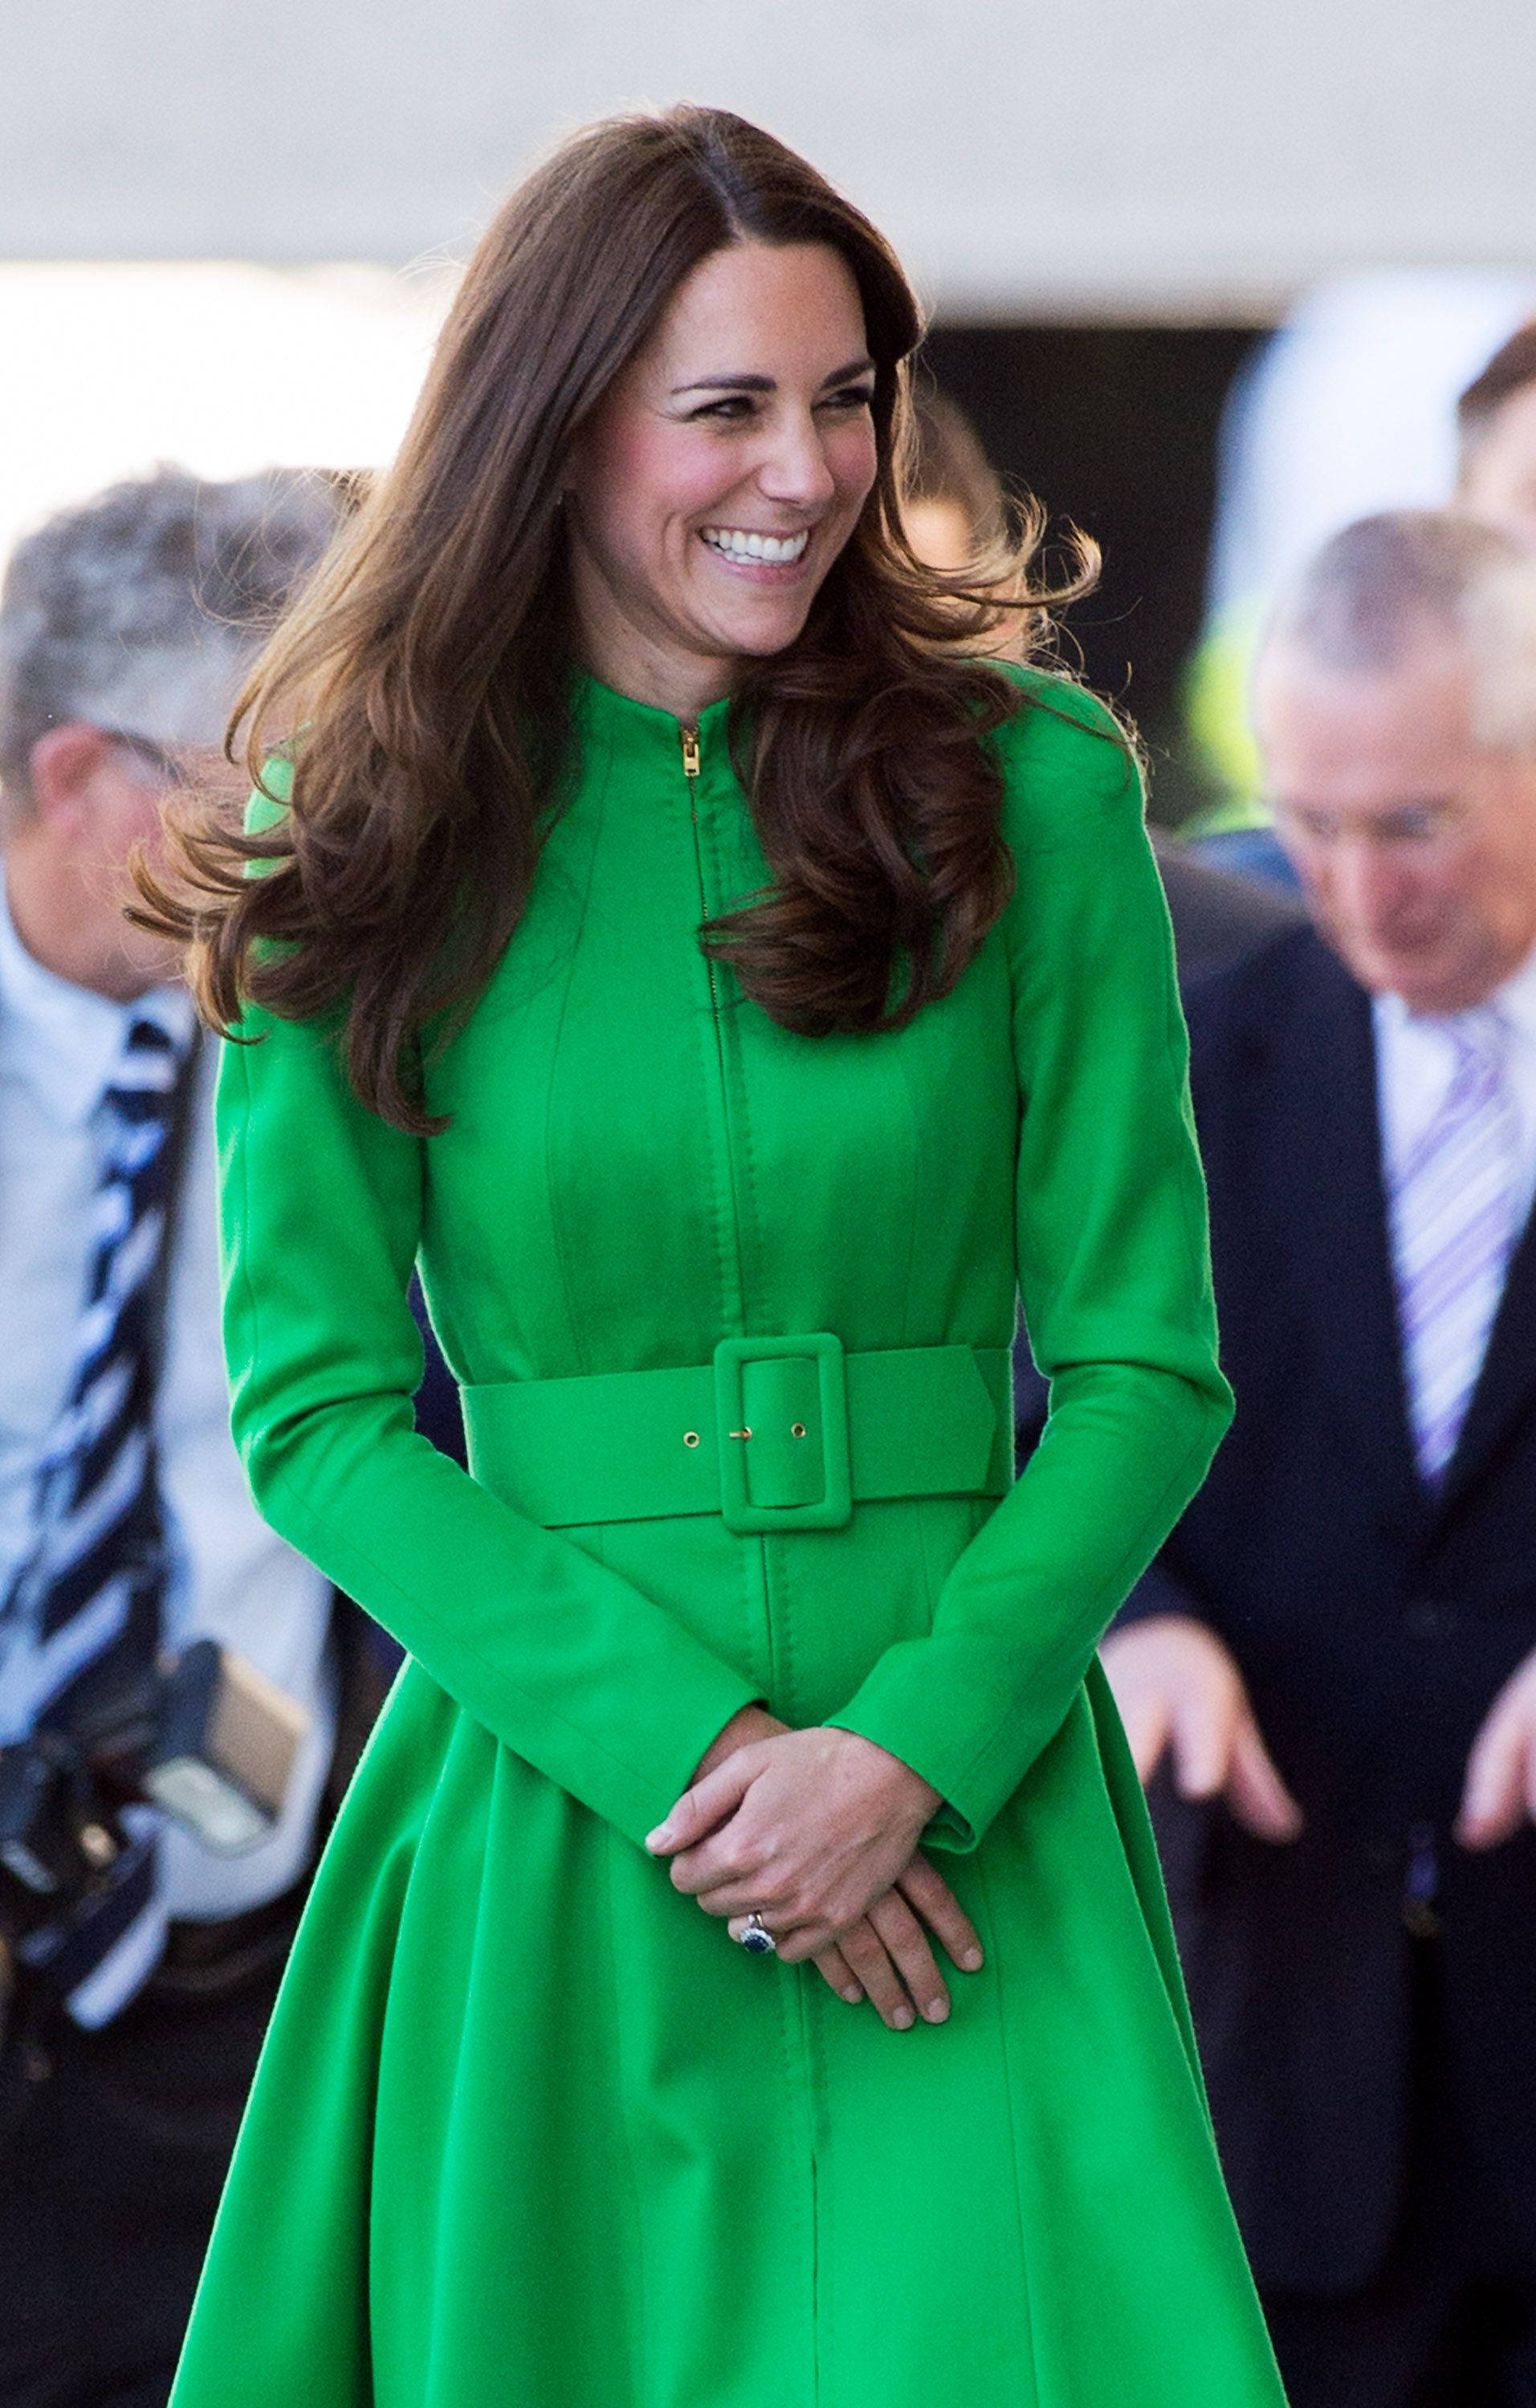 Kate Middleton the Duchess of Cambridge visits the National Portrait Gallery on April 24, 2014 | Photo: Getty Images.